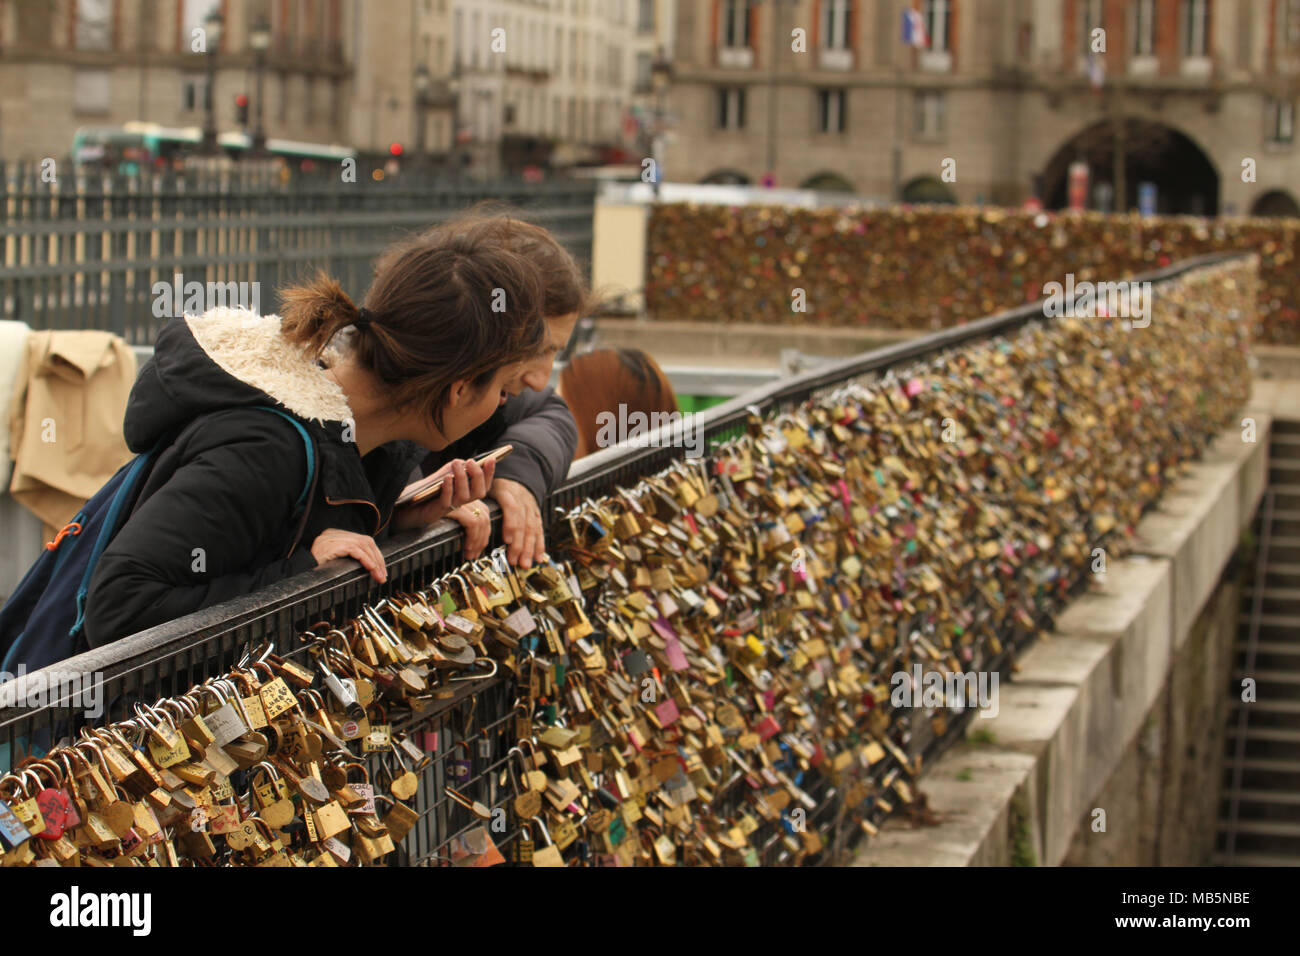 Paris, France -  03 April 2018. People admire a bridge covered in padlocks on the bridge at Pont Neuf on 03 April 2018.  The first Iron bridge built in France, had its railings replaced with glass panels after they collapsed under the weight on the metal padlocks and this culture has cropped up in other bridges in Paris. General view of Paris, France. @ David Mbiyu/Alamy Live News - Stock Image